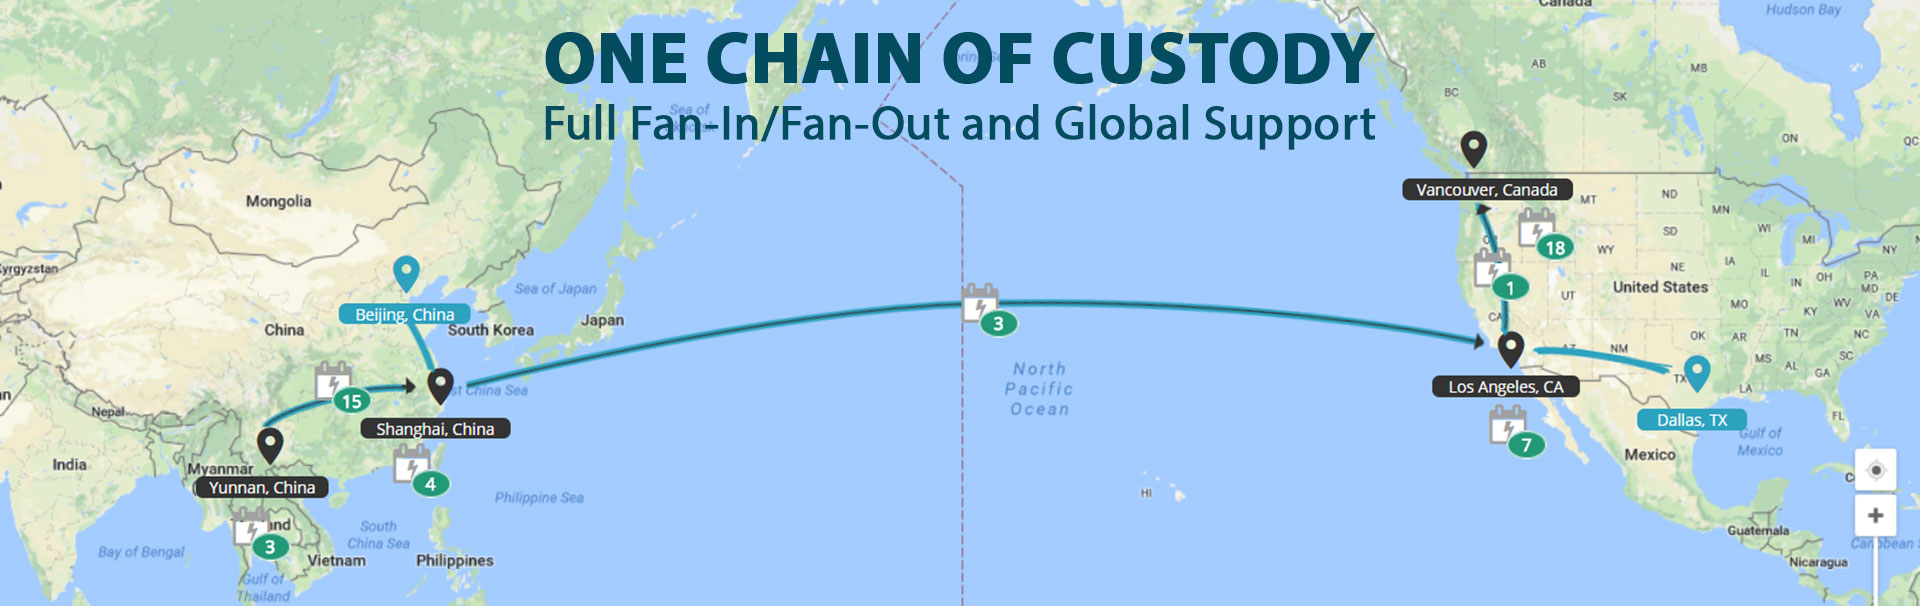 Chain of Custody in Supply Chain Management